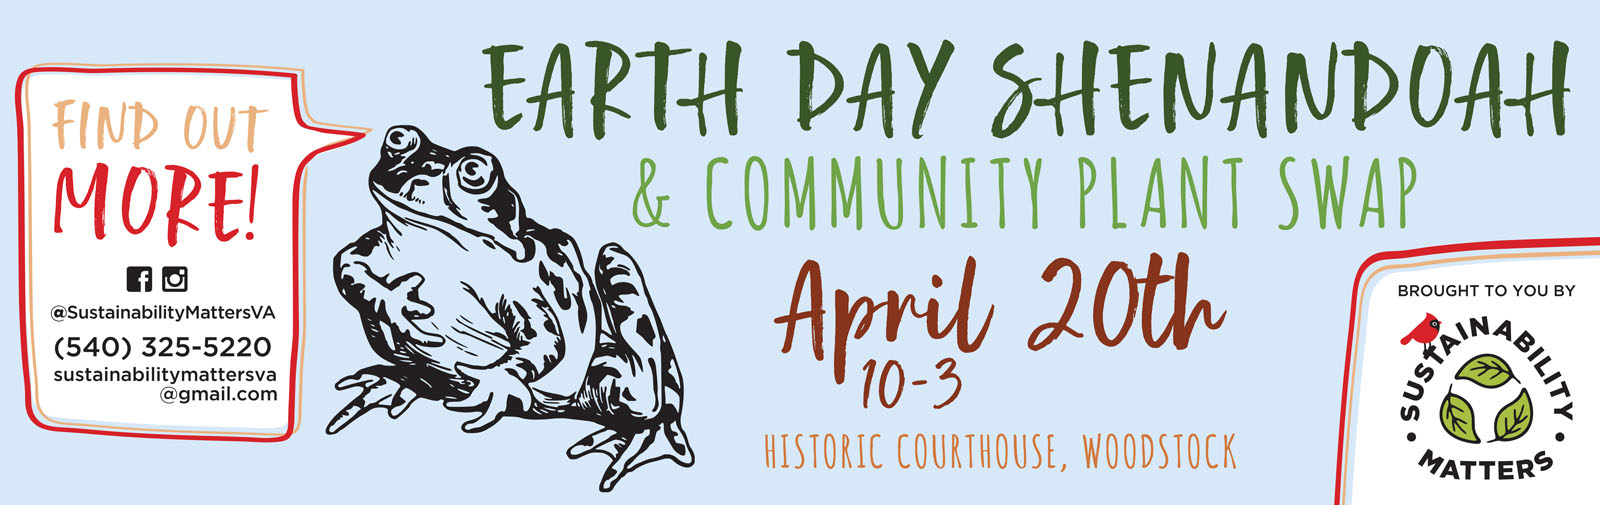 Earth Day Banner 4 ORDER FILE.jpg